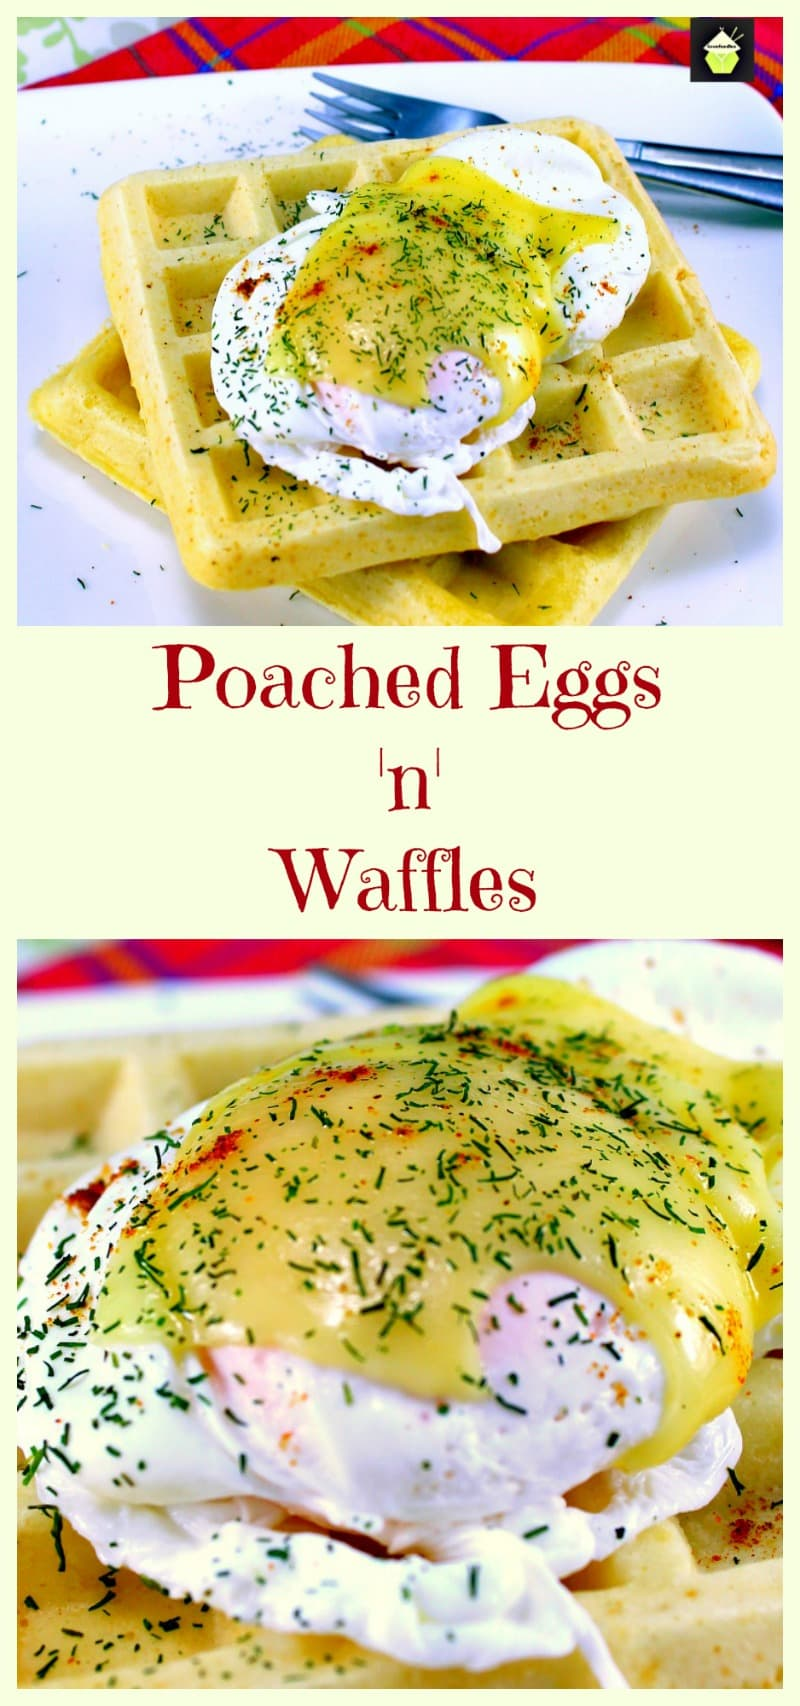 Waffle Brunch! a super easy recipe for low fat waffles, poached eggs with melted cheese. Makes a nice idea for a lovely breakfast, brunch or supper. You decide!  | Lovefoodies.com